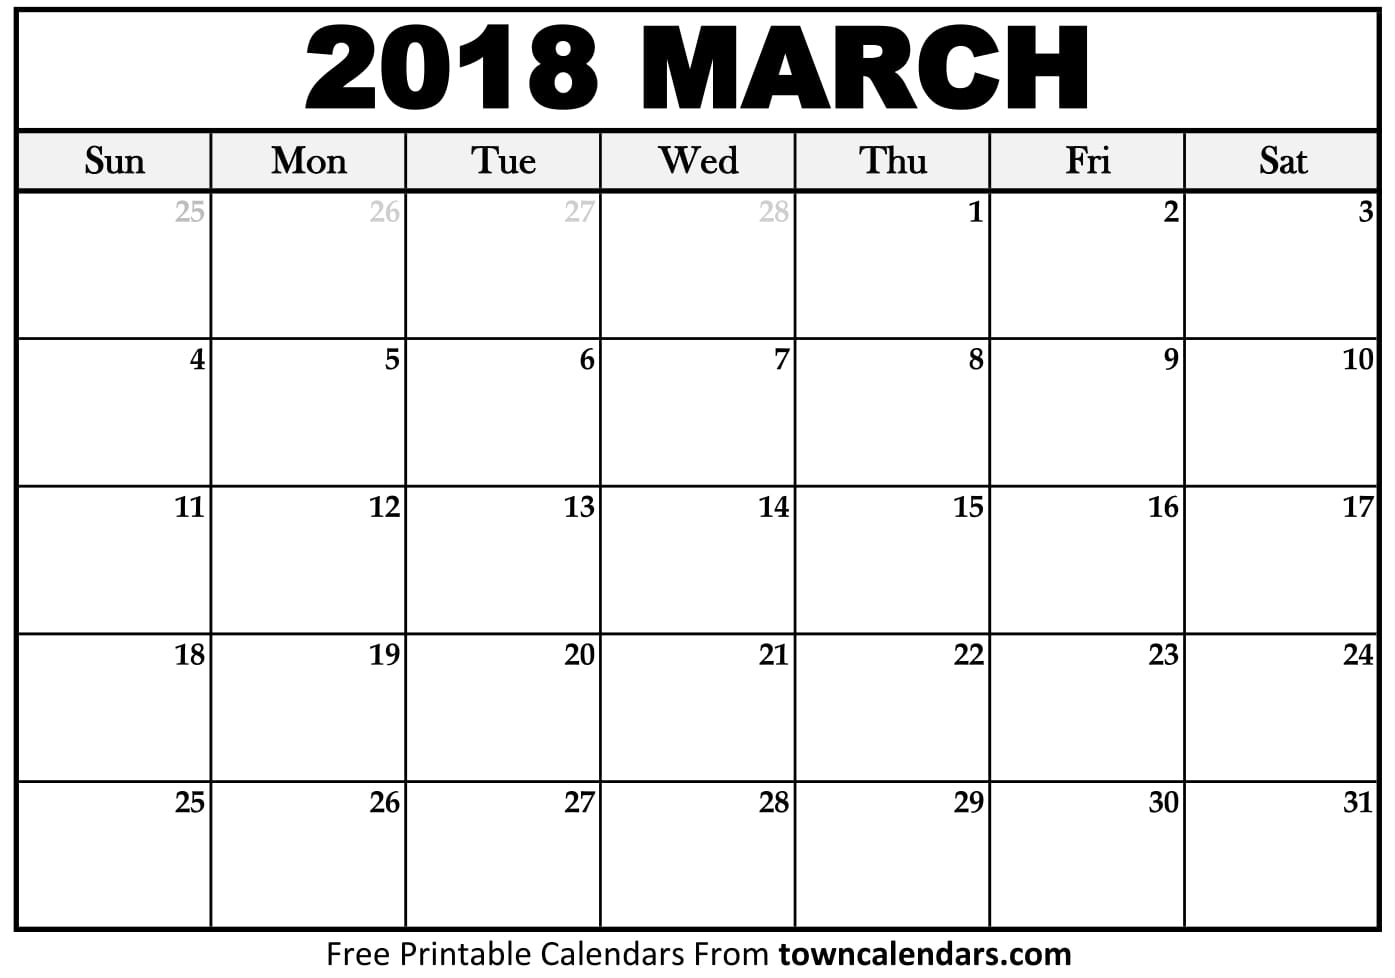 Calendar March 2018 Doc : March calendar printable template with holidays pdf